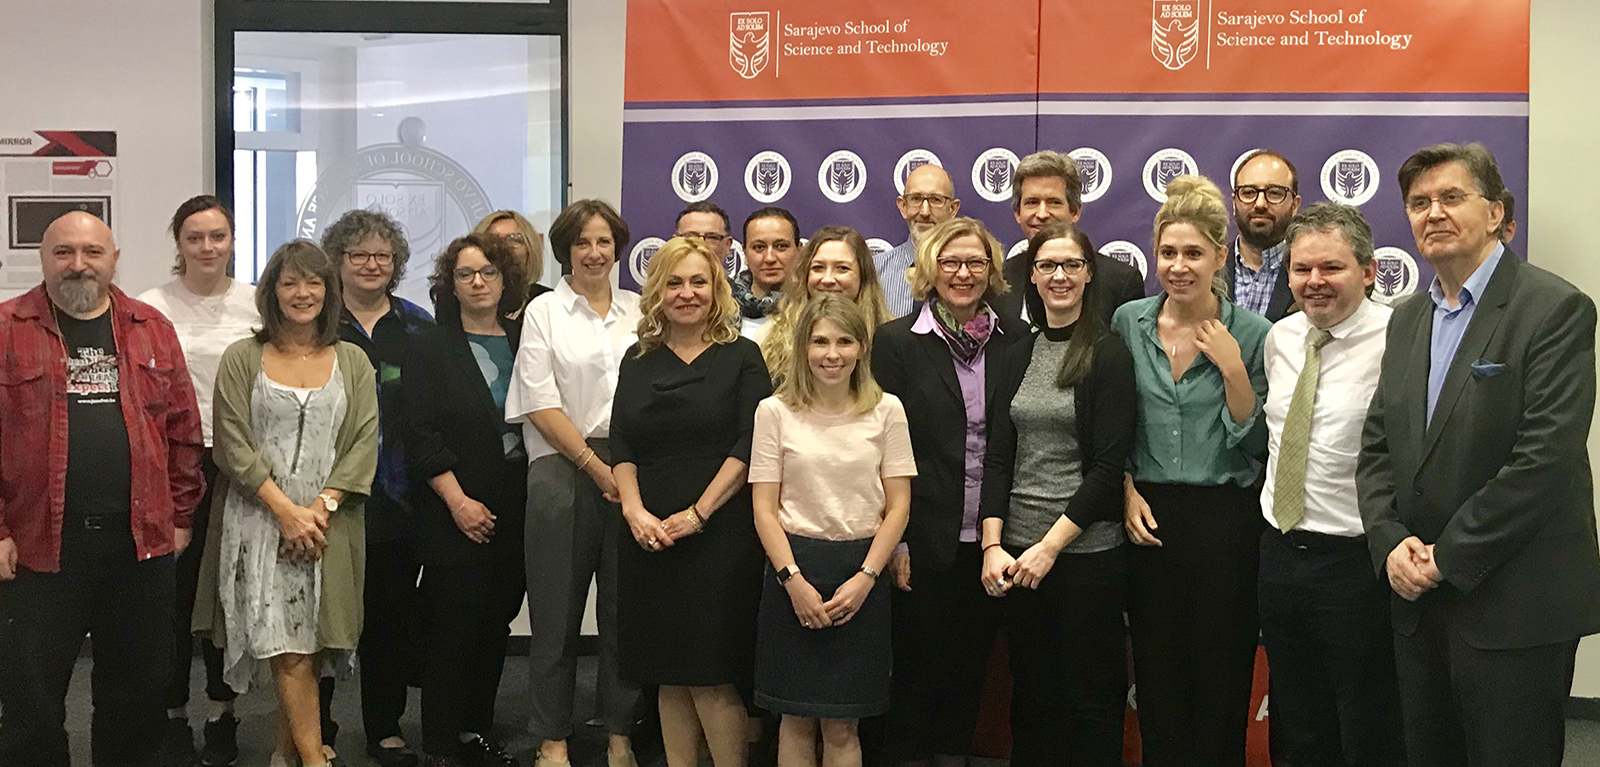 group photo of members of the ESRC Shared Education Network